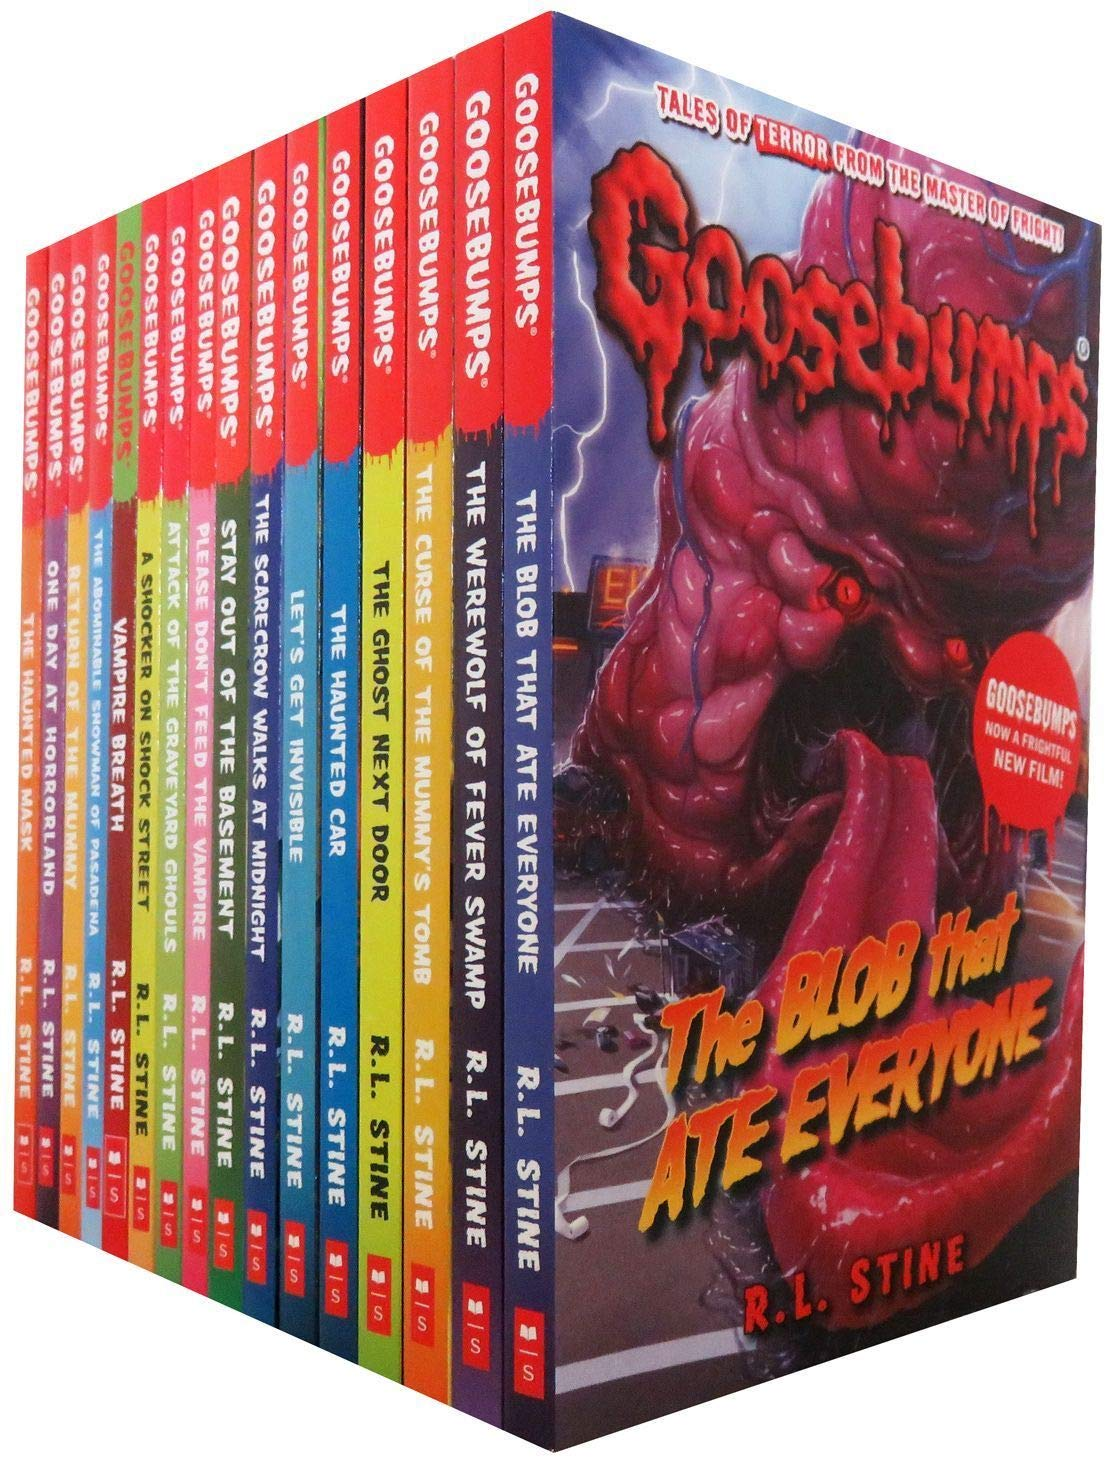 Classic Goosebumps Books Collection Stine product image